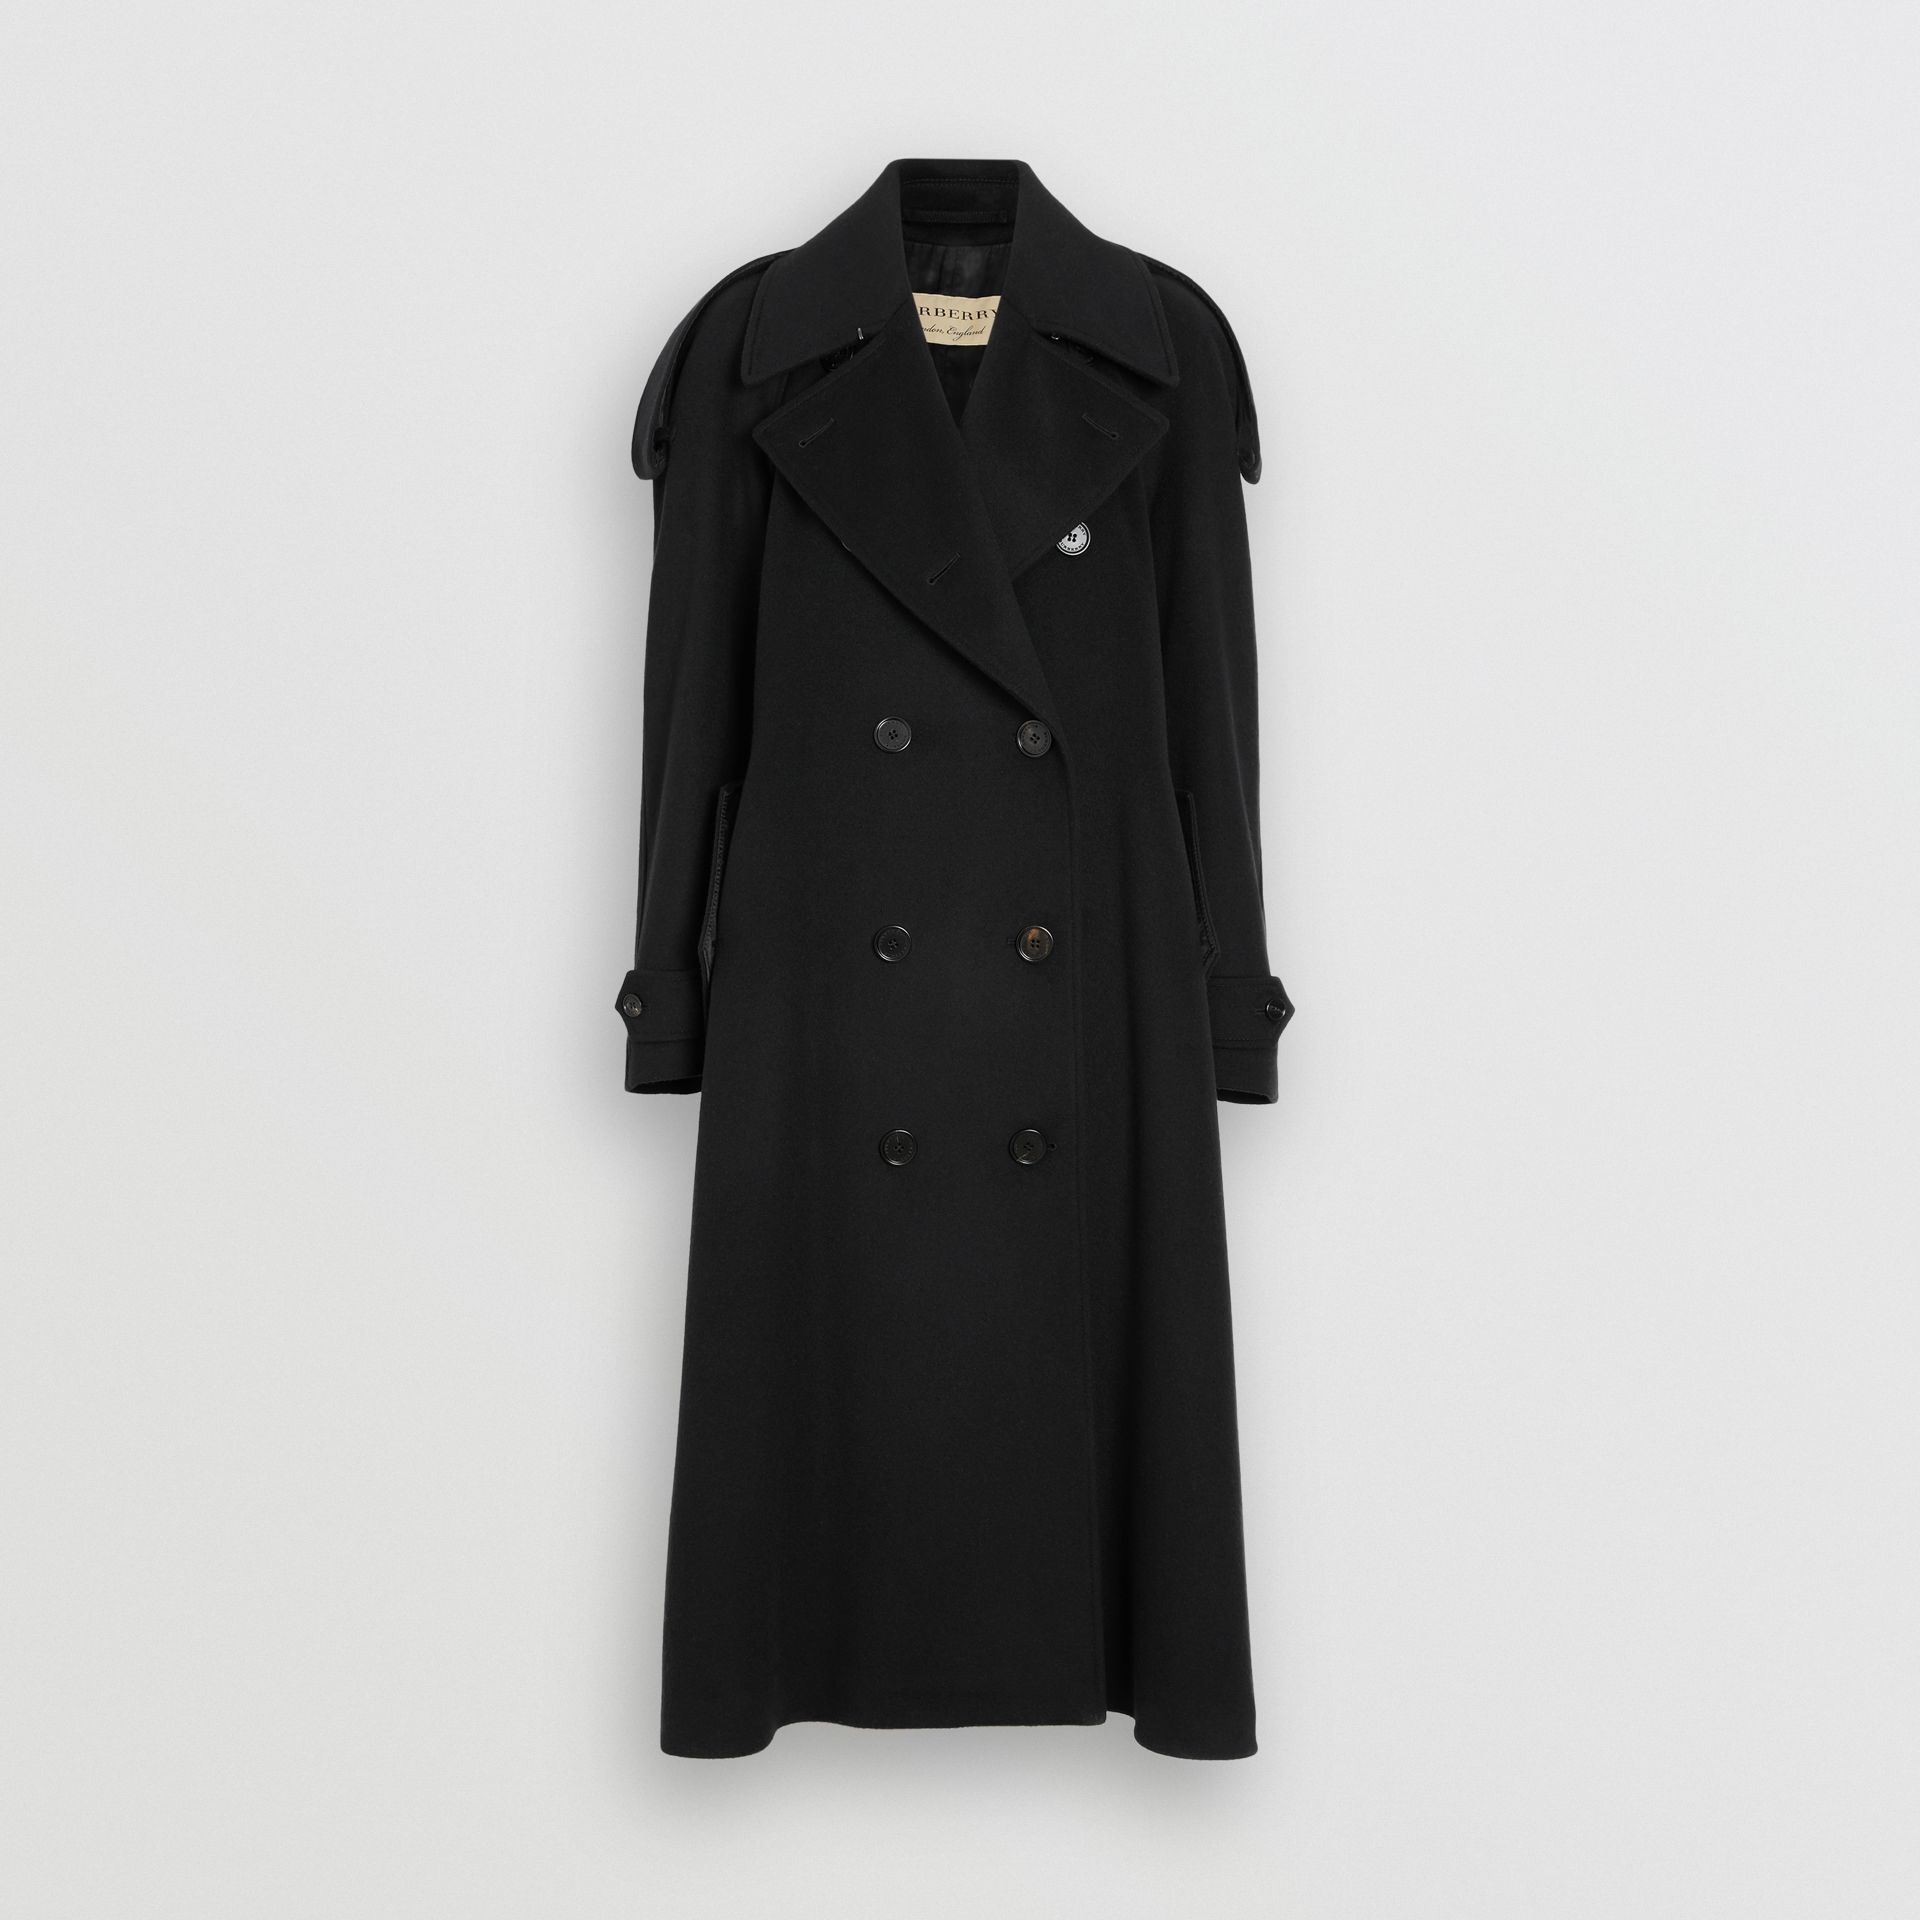 Wool Cashmere Double-breasted Coat in Black - Women | Burberry - gallery image 3